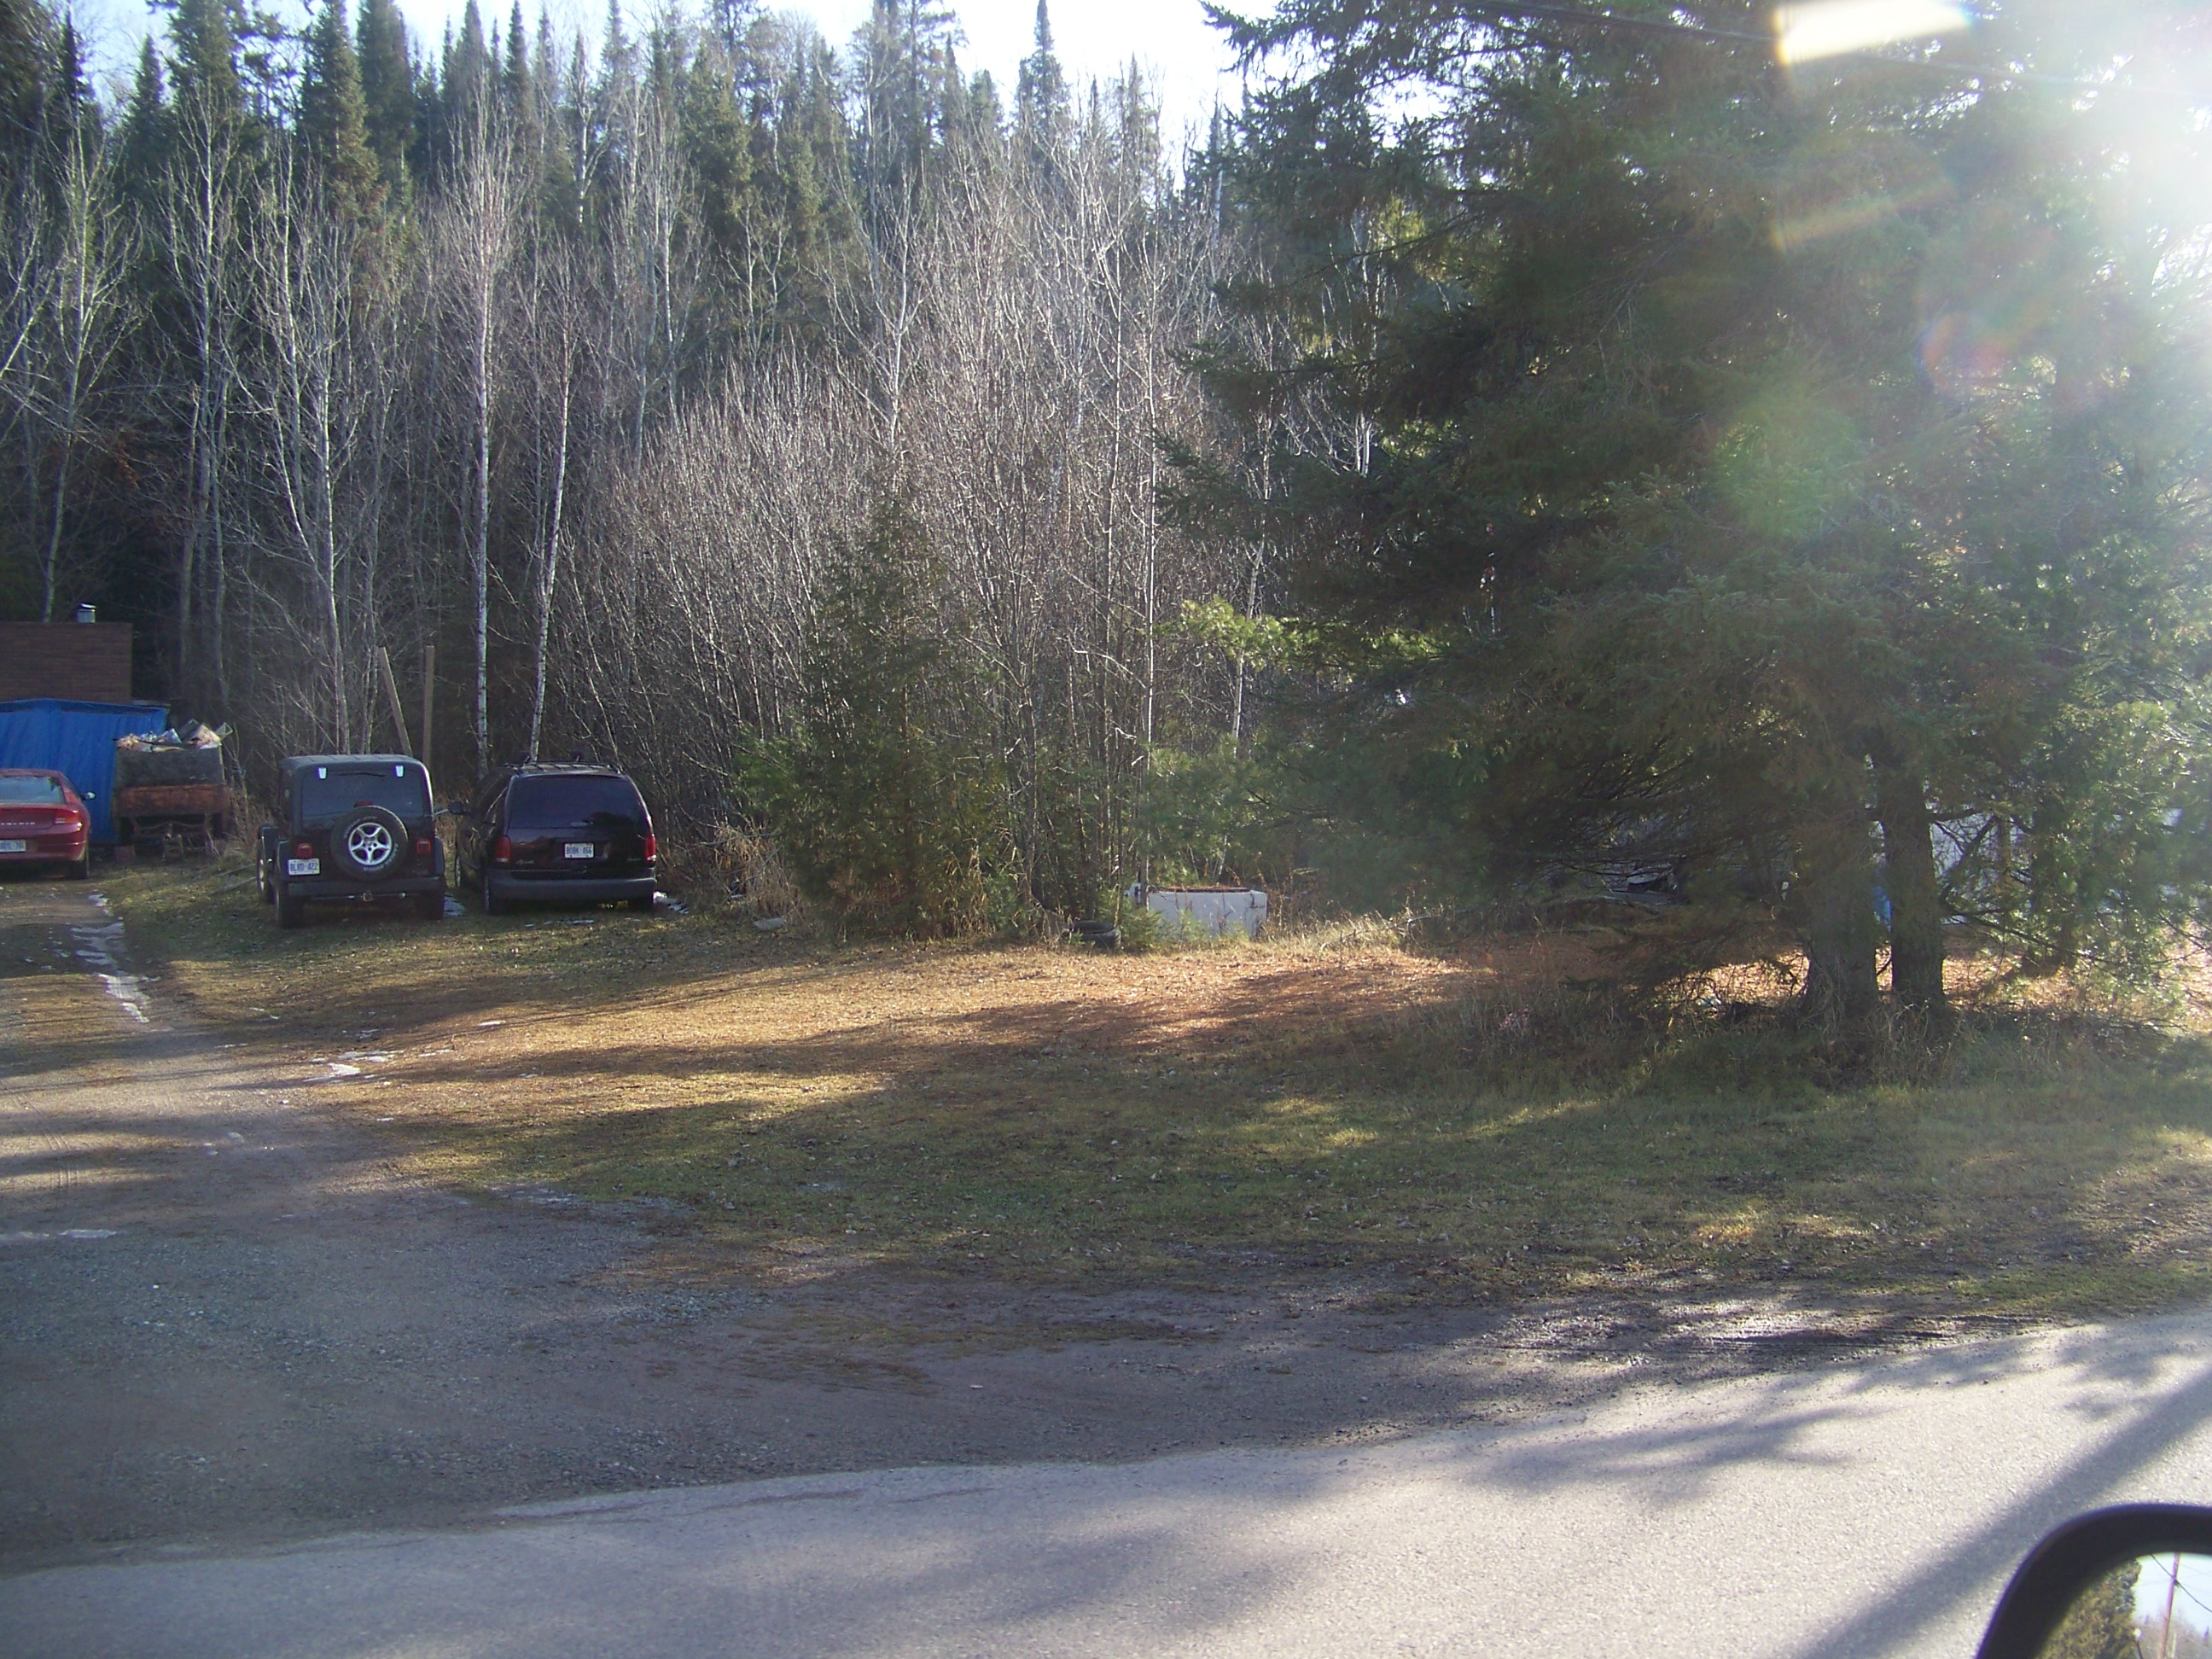 woodland area with parking lot